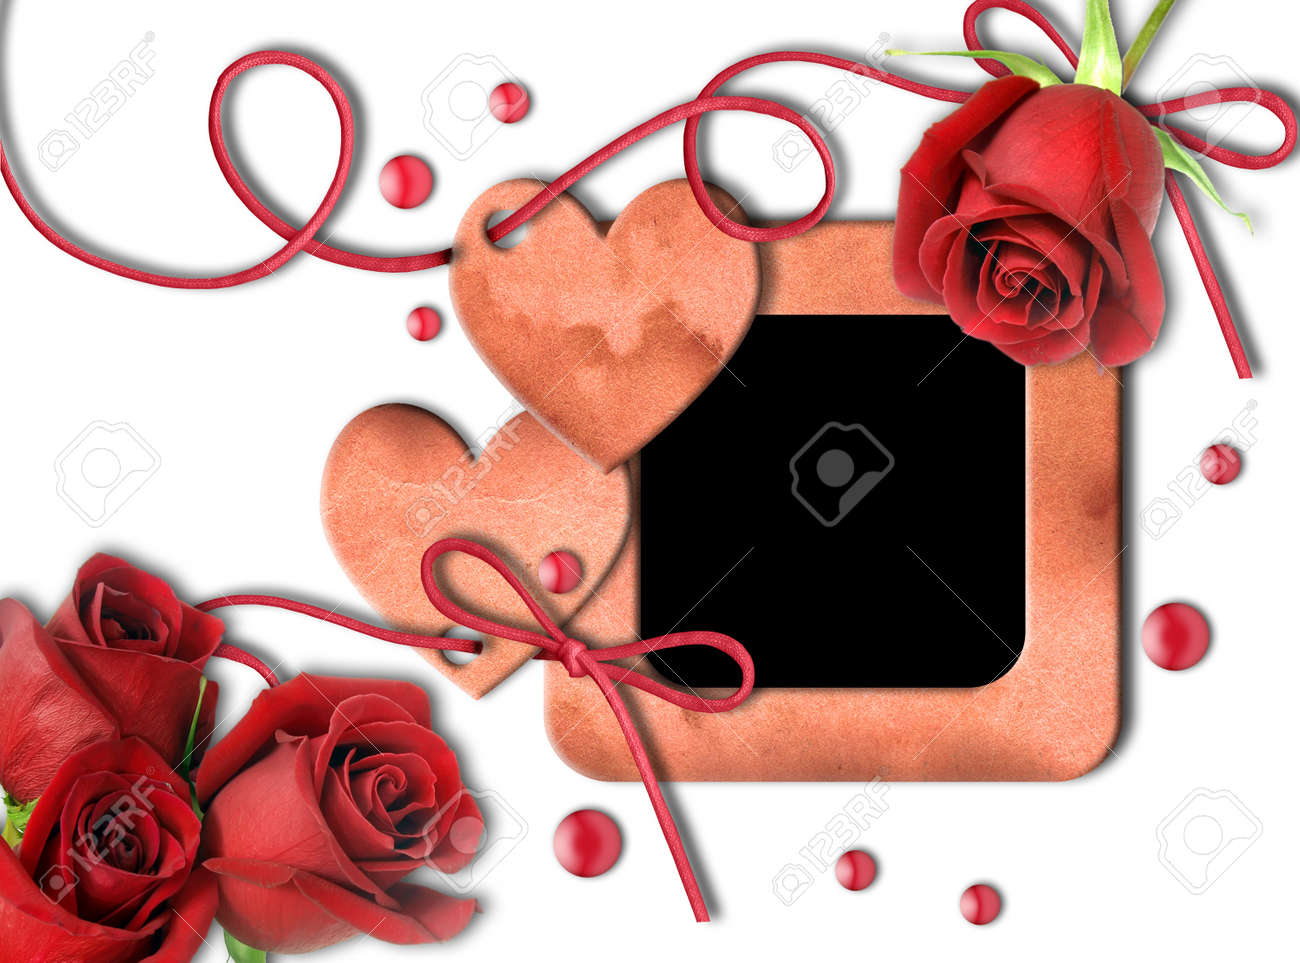 Vintage photo frame, red roses and heart on white background.  Valentine's Day Stock Photo - 11808873